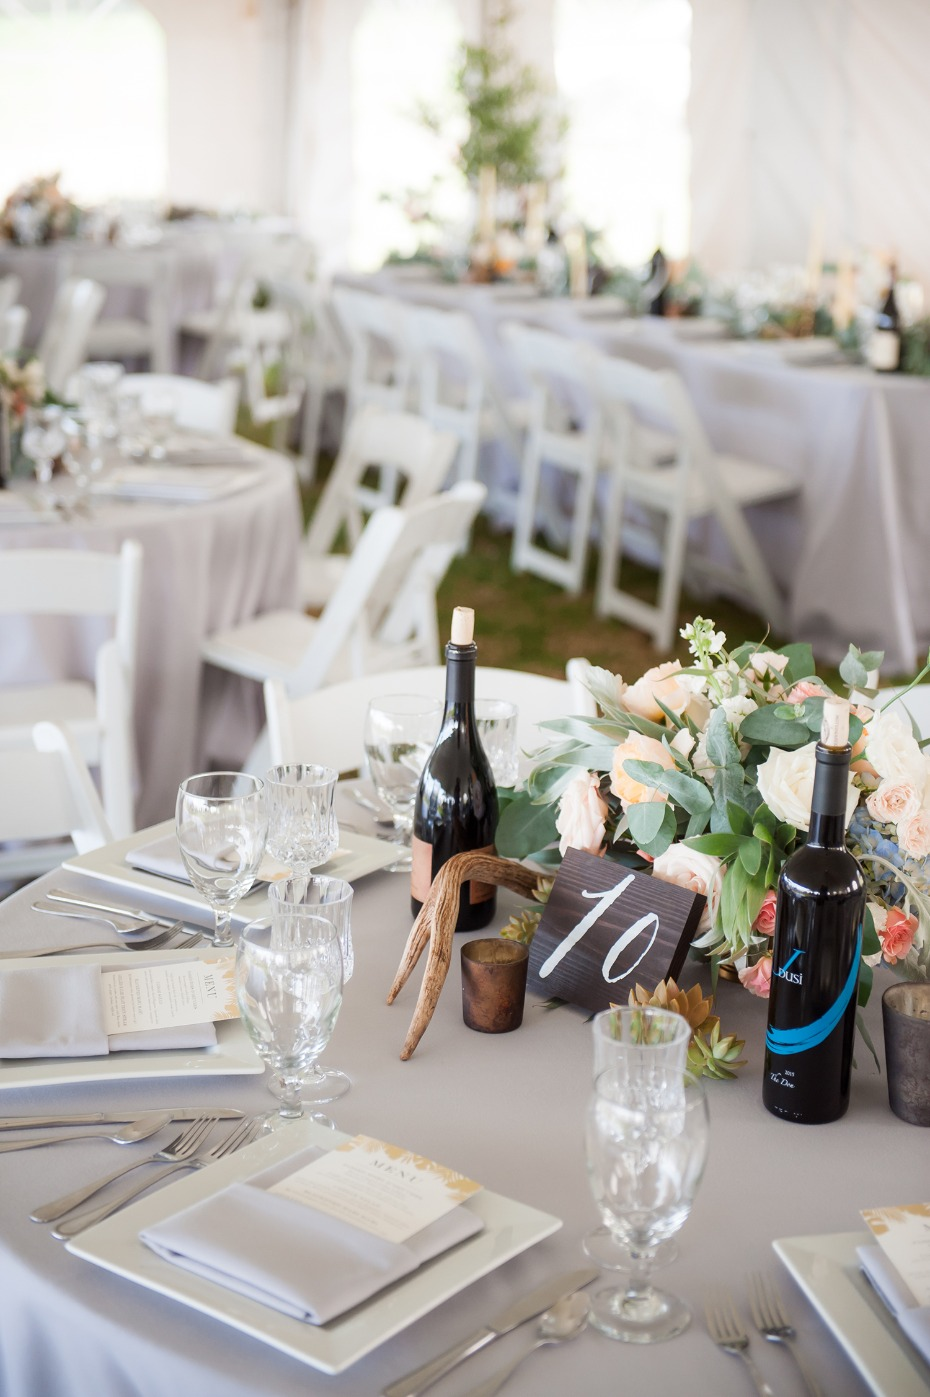 Rustic chic centerpiece with antler sheds